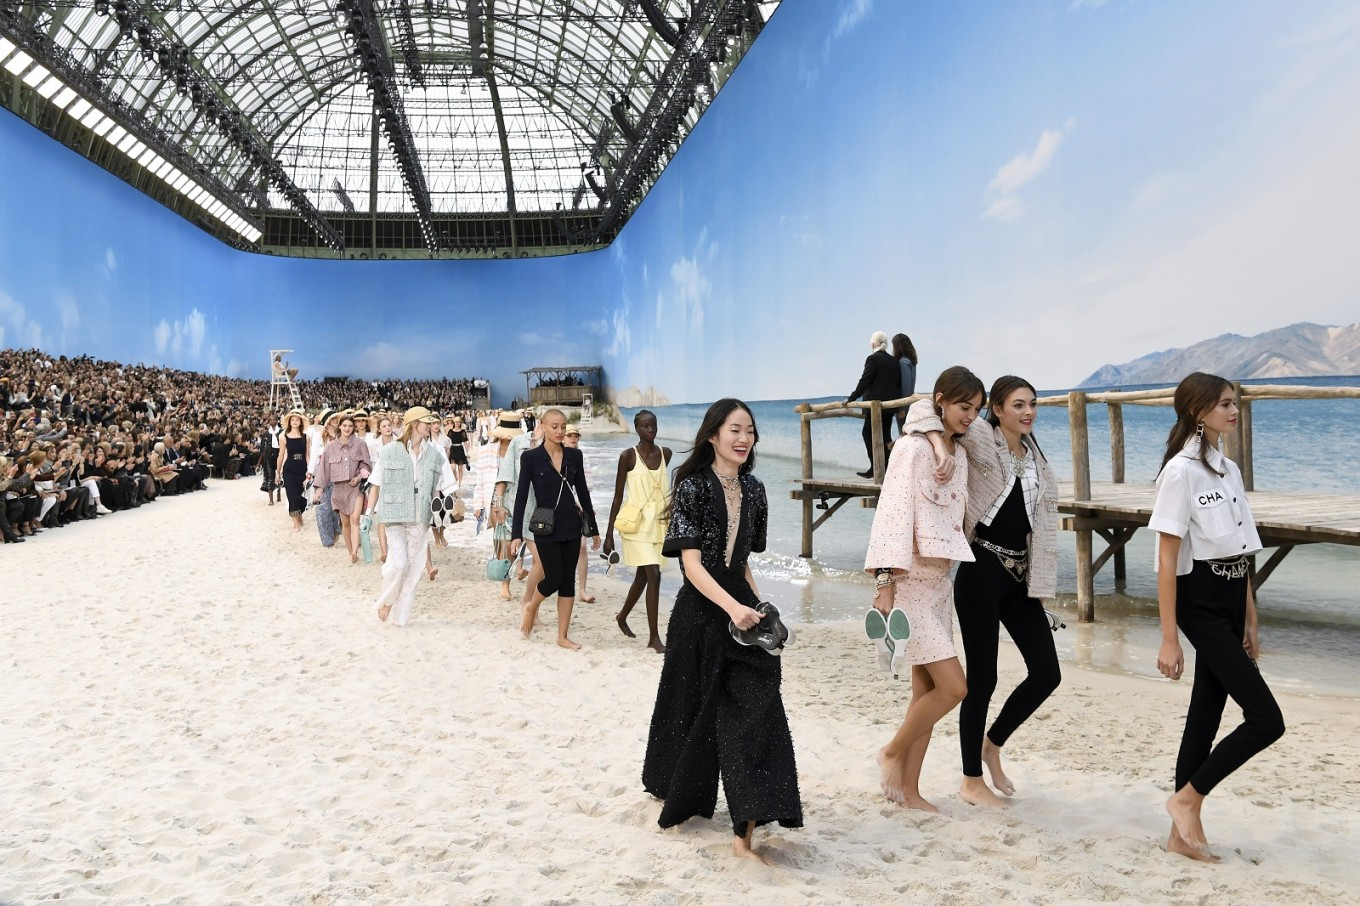 Lagerfeld takes Chanel to beach as Vuitton boosts color